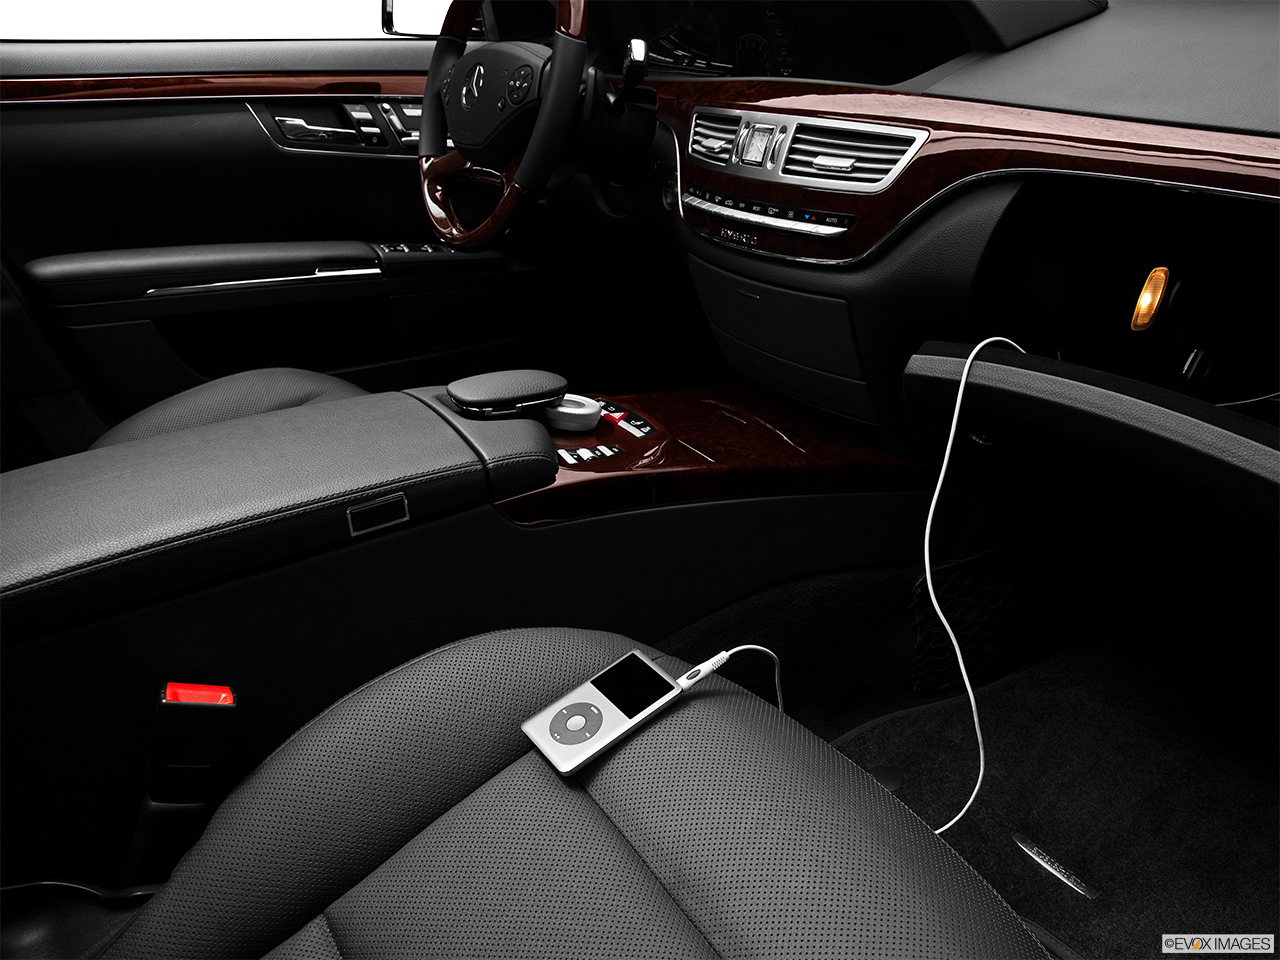 2012 Mercedes-Benz S-Class Hybrid S400 Auxiliary jack props.